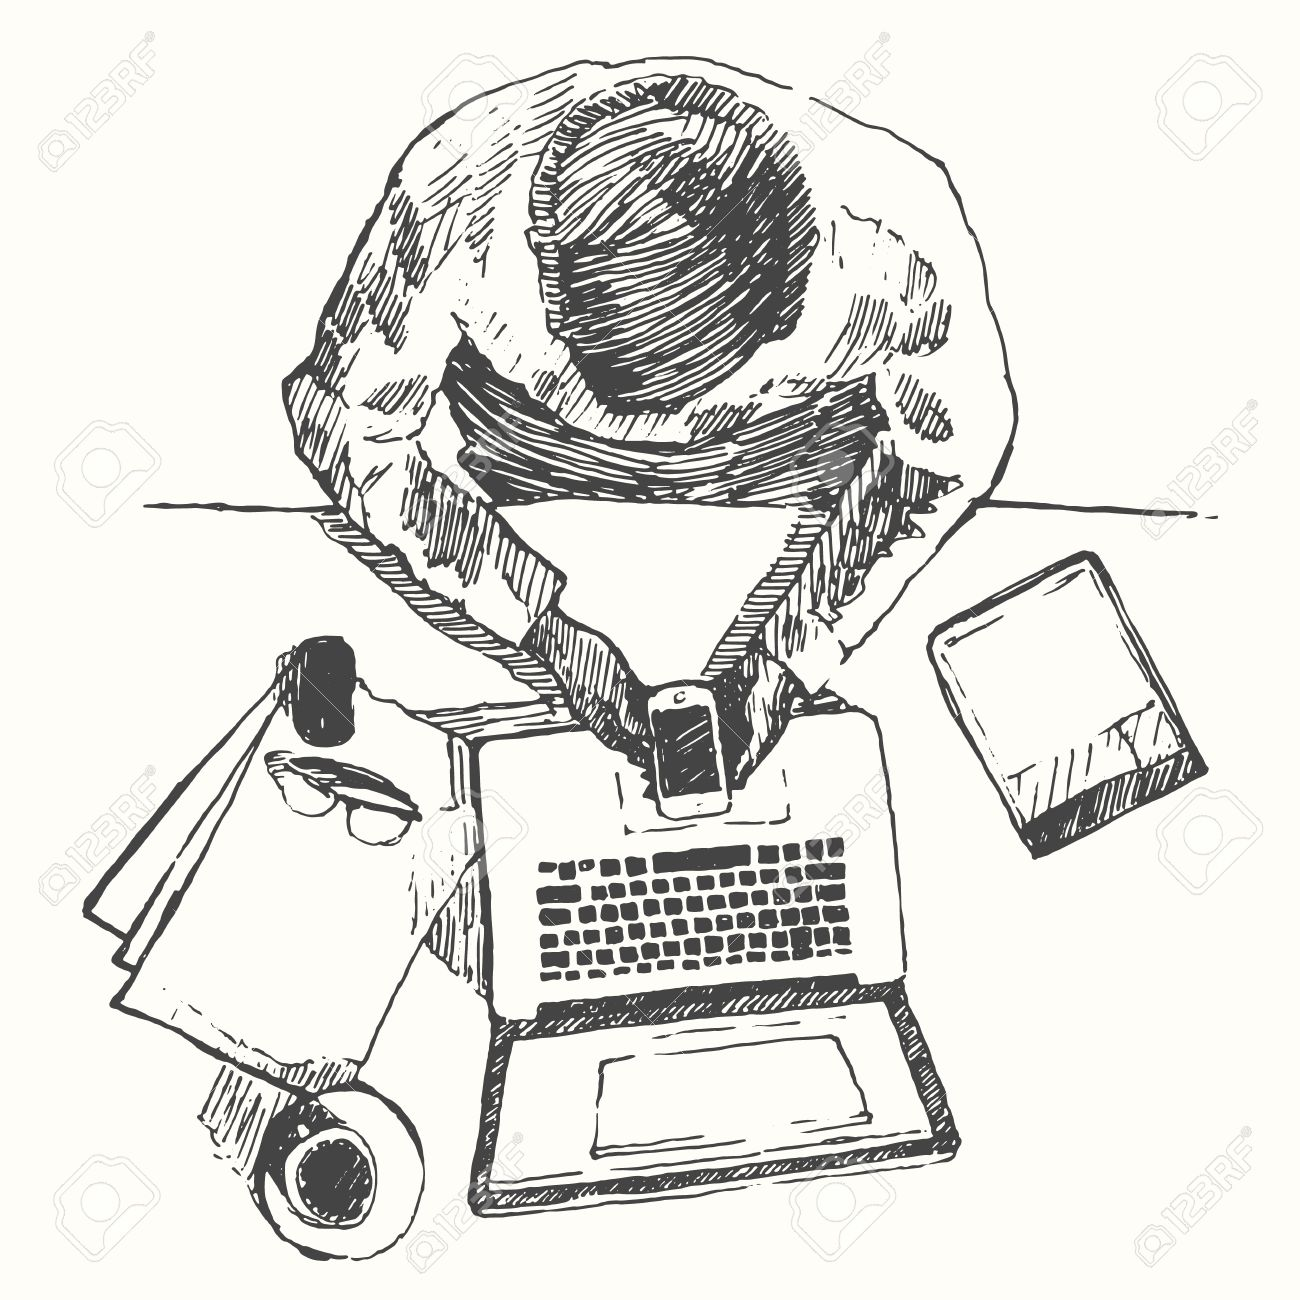 Sketch Of Hands With Computer Man Doing Office Work Top View Royalty Free Cliparts Vectors And Stock Illustration Image 44034766